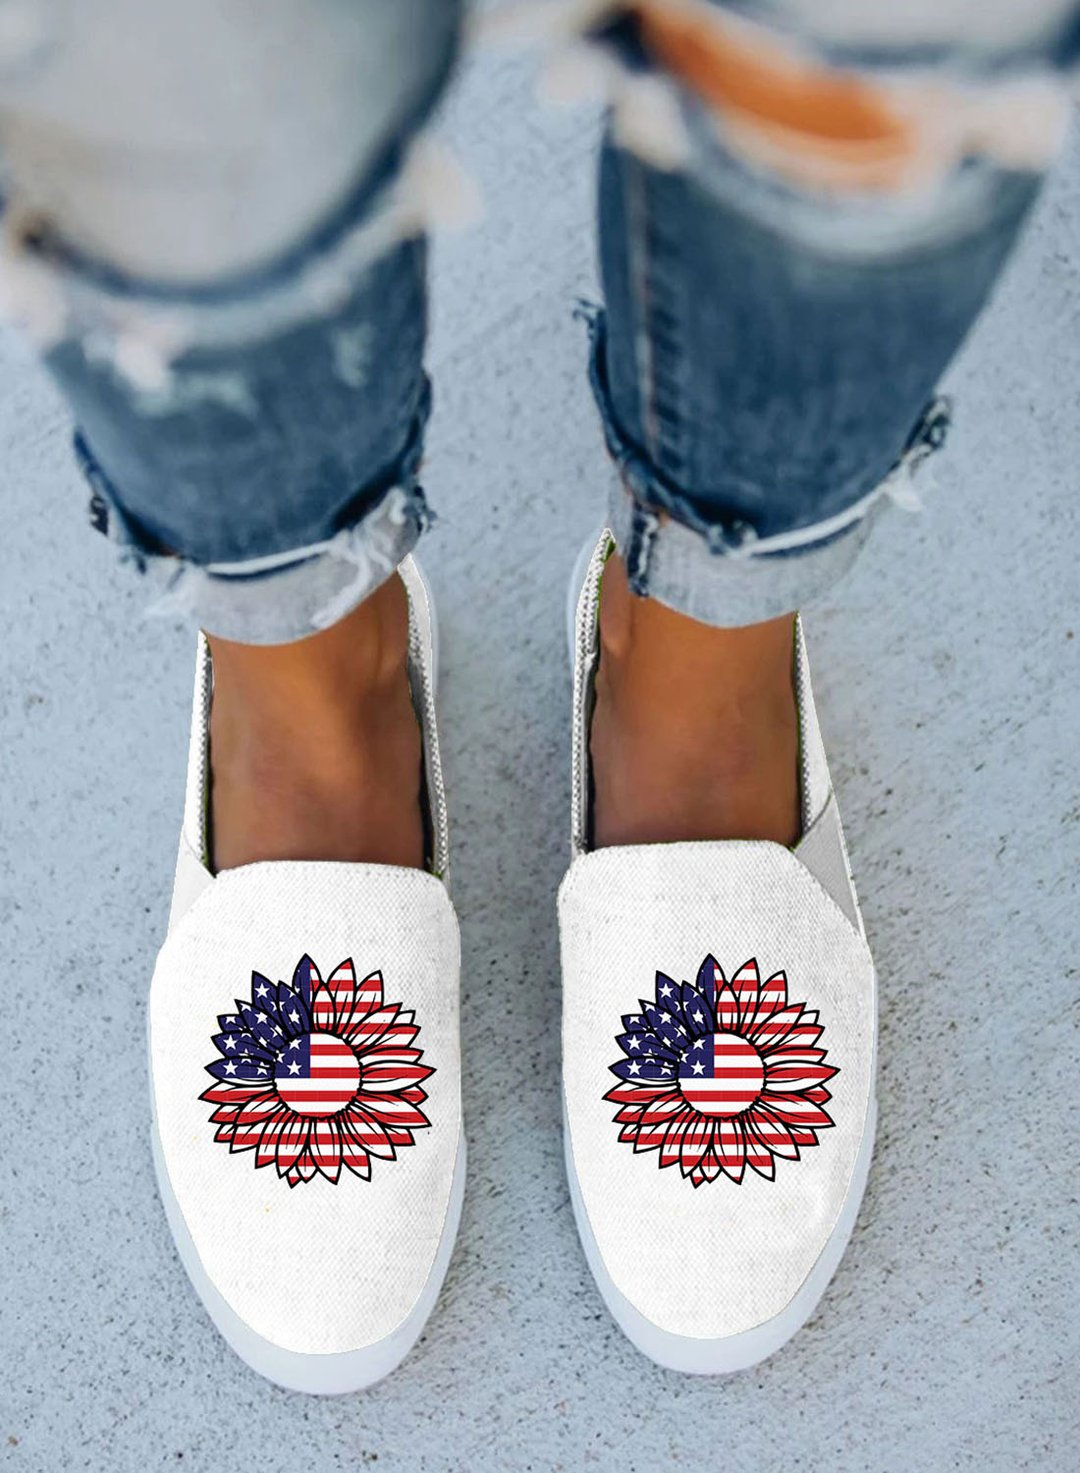 White Women's Canvas Shoes Cute Flag Sunflower Print Canvas Shoes LC121065-1